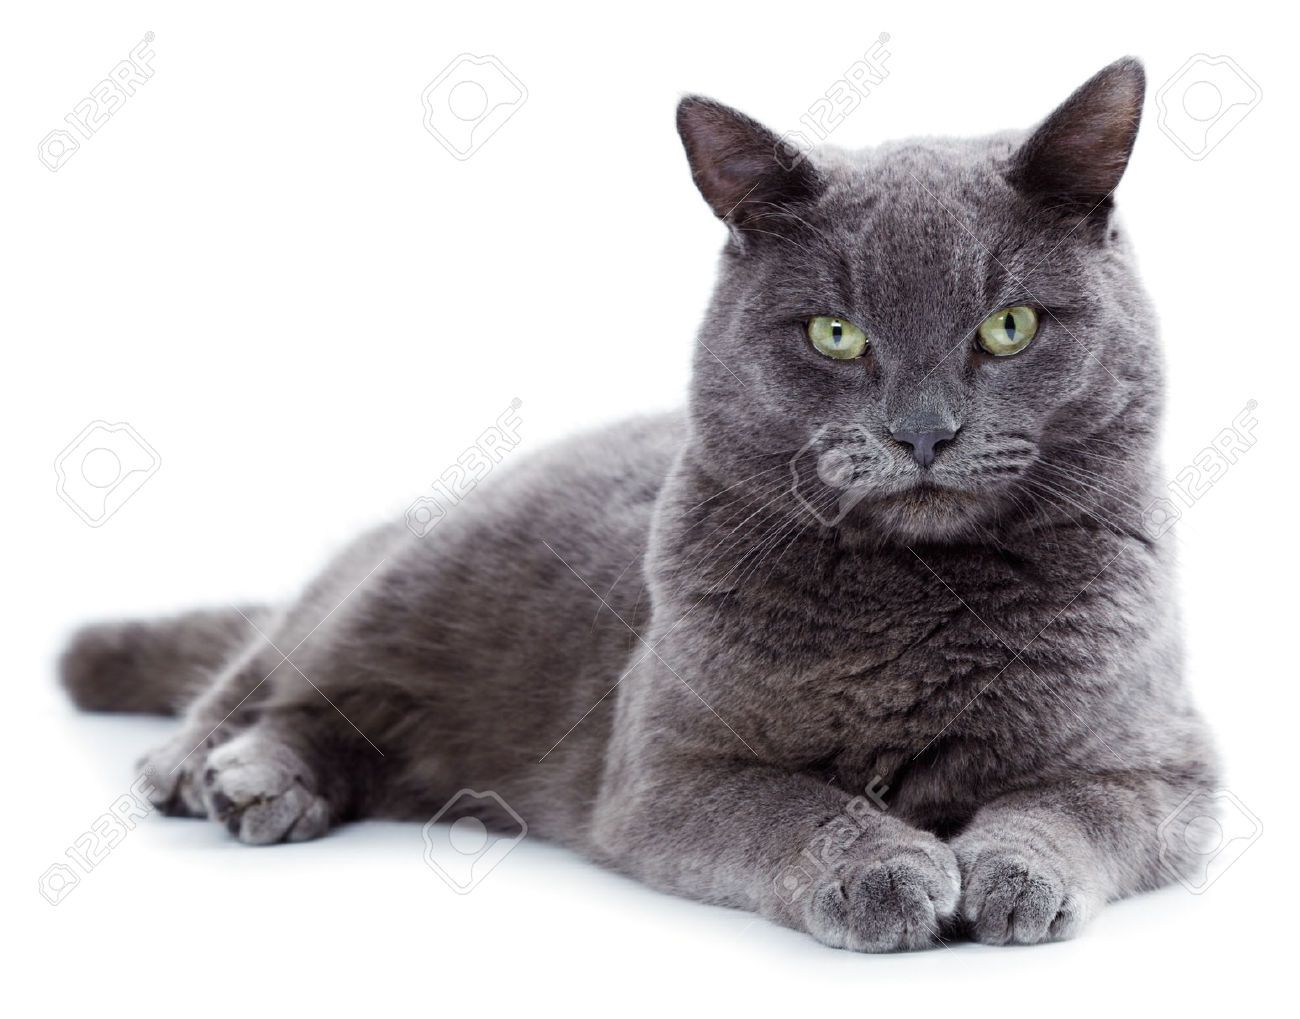 25274275 Green Eyed Maltese Cat Also Known As The British Blue On A White Background Stock Photo Jpg 1300 1019 Cat Breeds Korat Cat Cats That Dont Shed